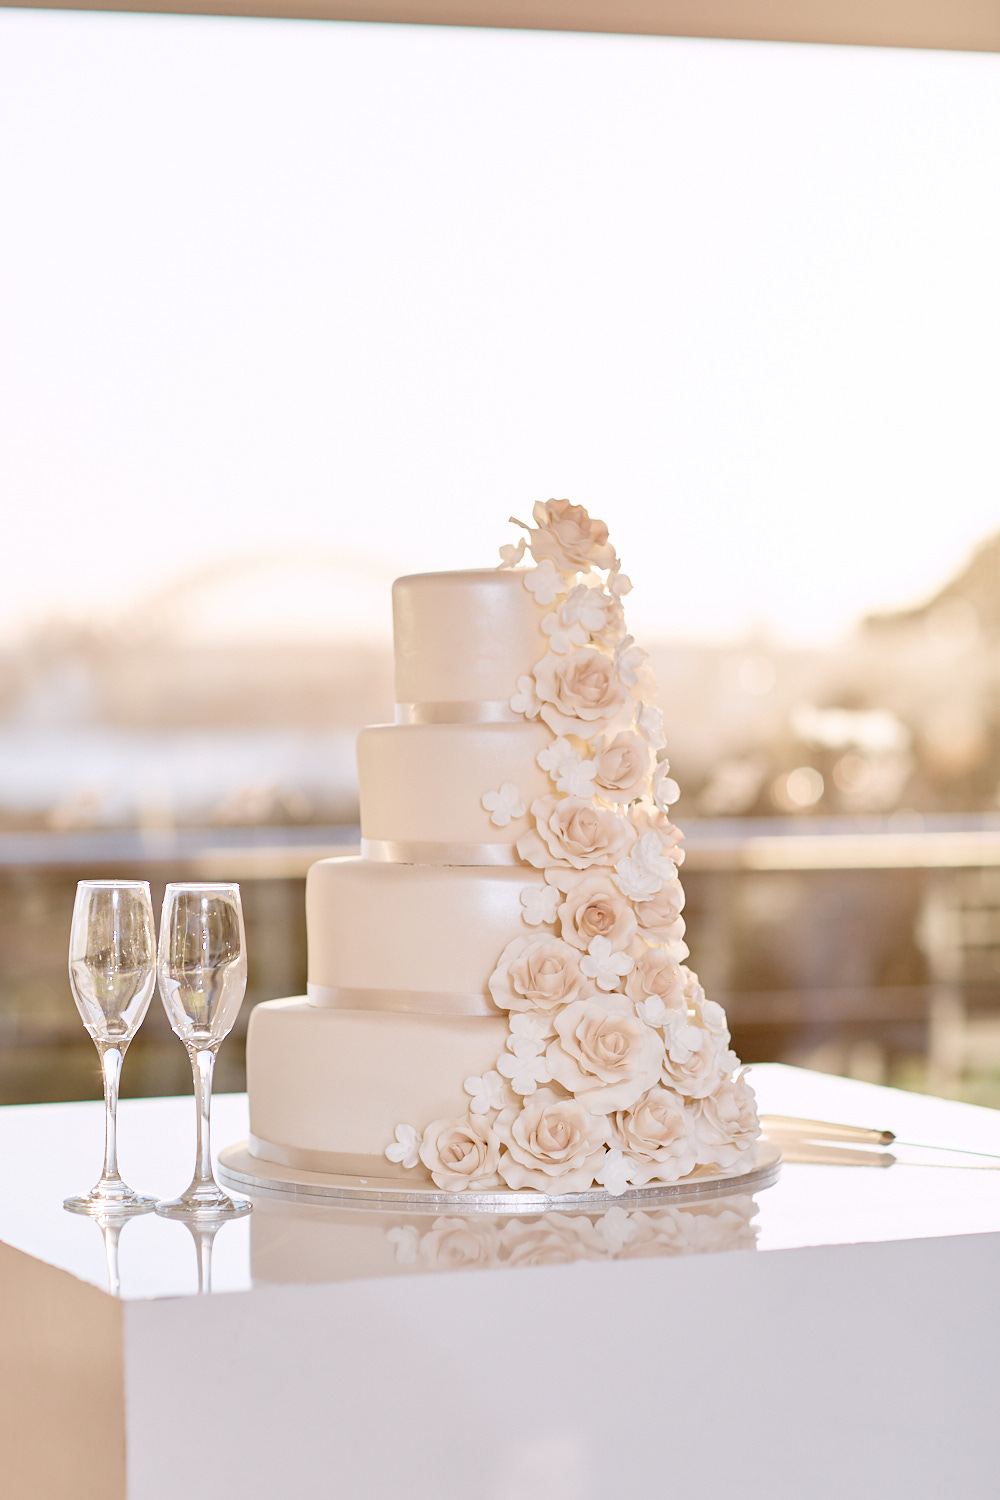 Wedding cake and champagne glasses in front of window in Taronga Centre by Blue Mountains wedding photographer Joshua Witheford